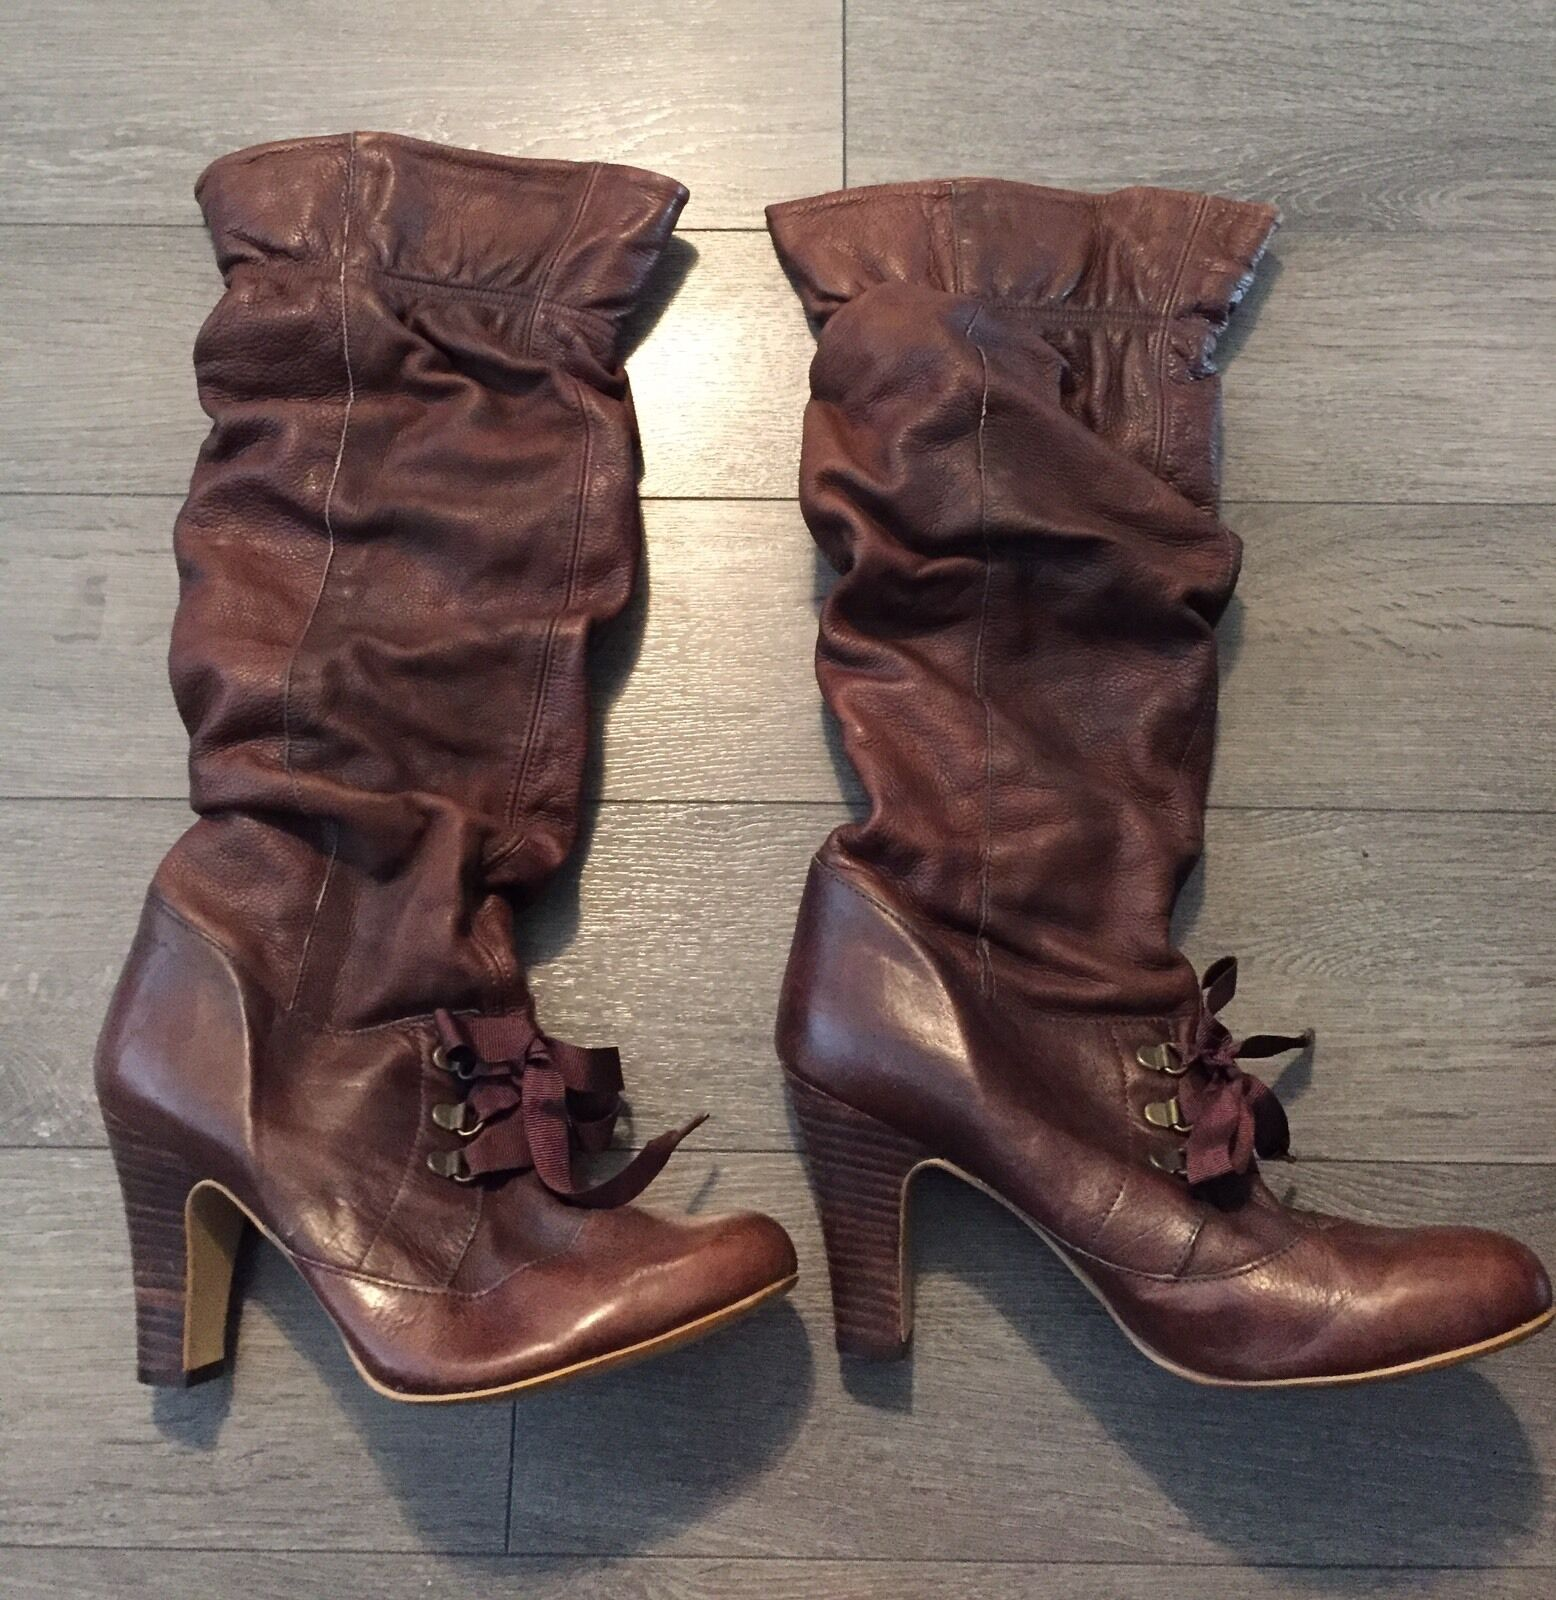 Faith Ladies Leather Knee High Boots - Brown - Size 6